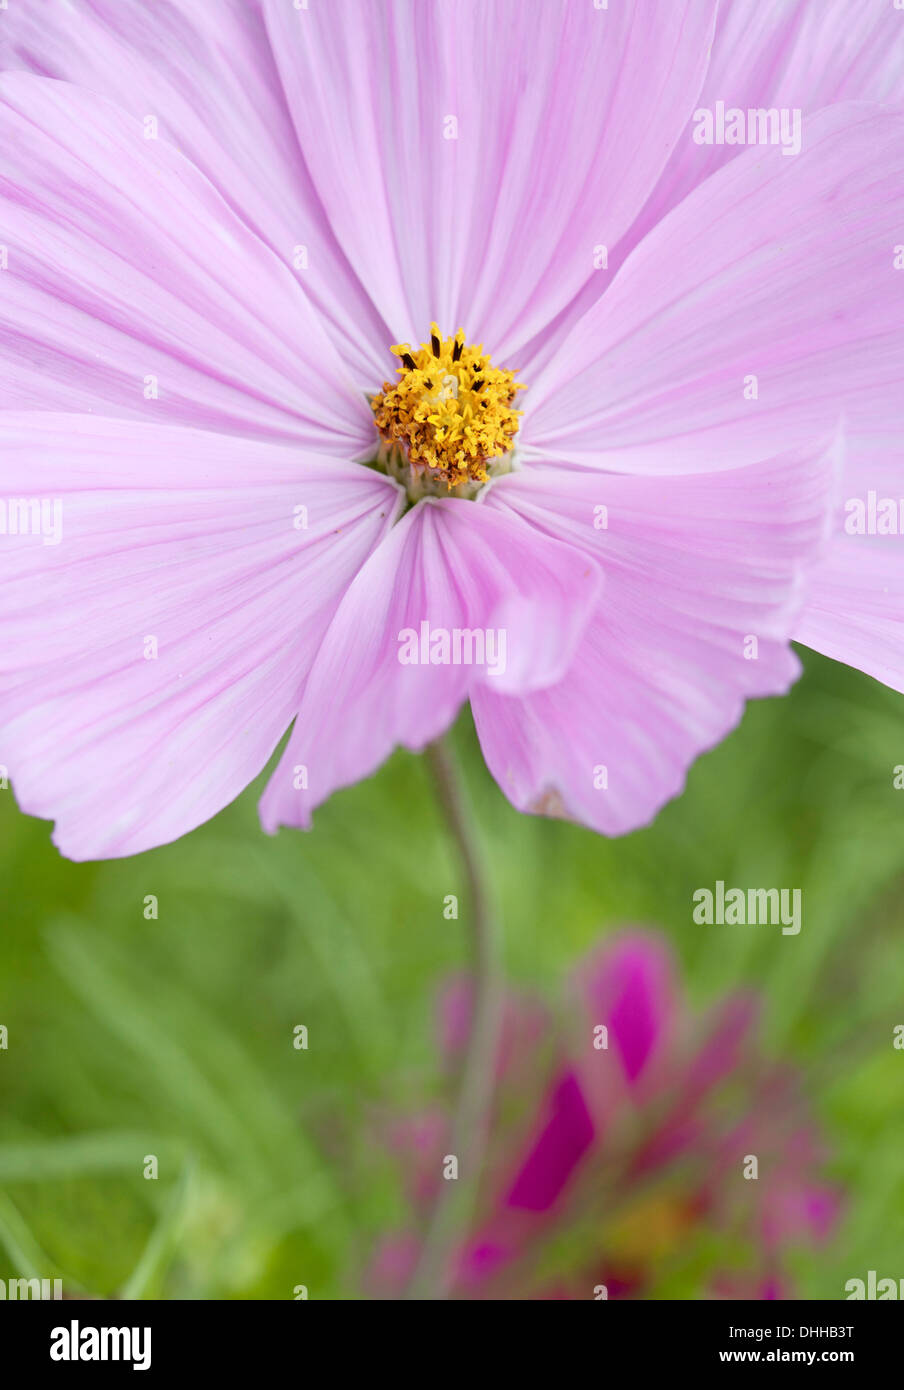 Close up of Pink Cosmos Flower with soft focus and shallow depth of field. - Stock Image